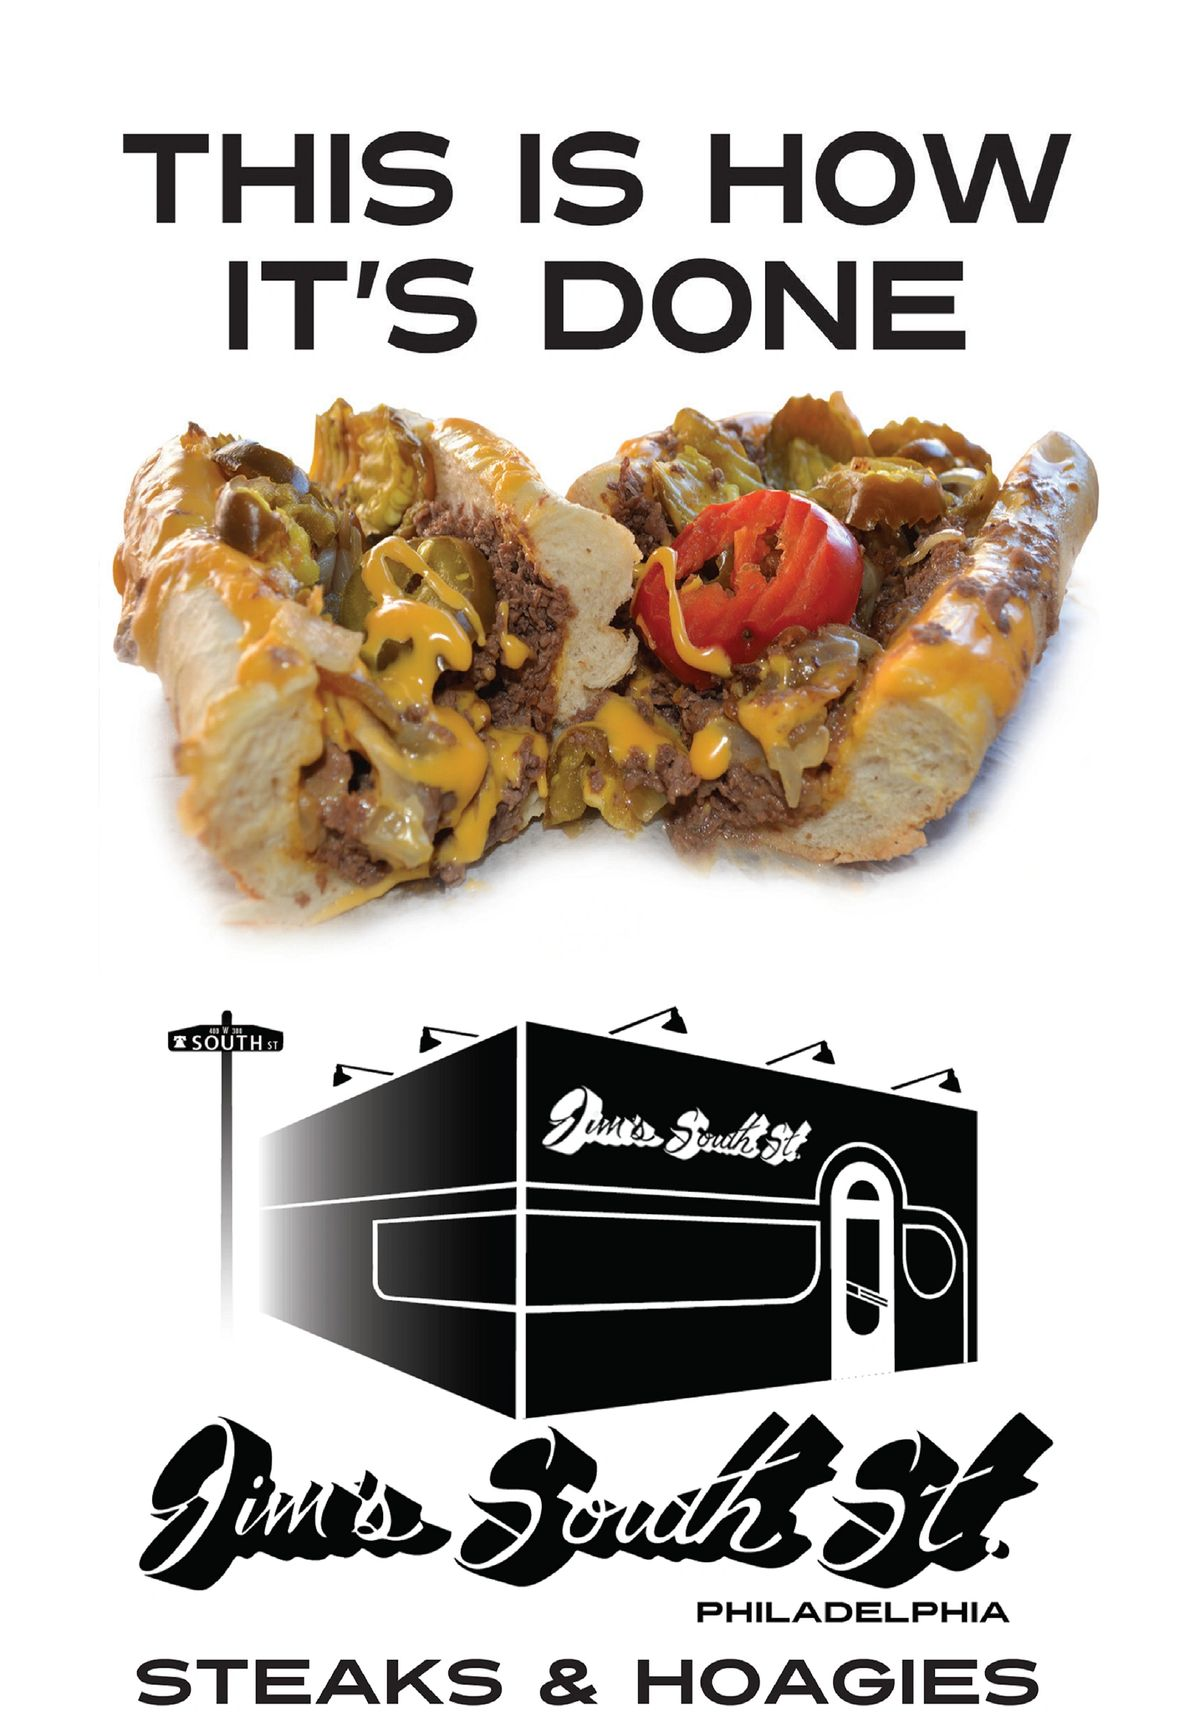 Cheesesteak, Jim's Steaks South Street, Jims's South St. #thisishowitsdone